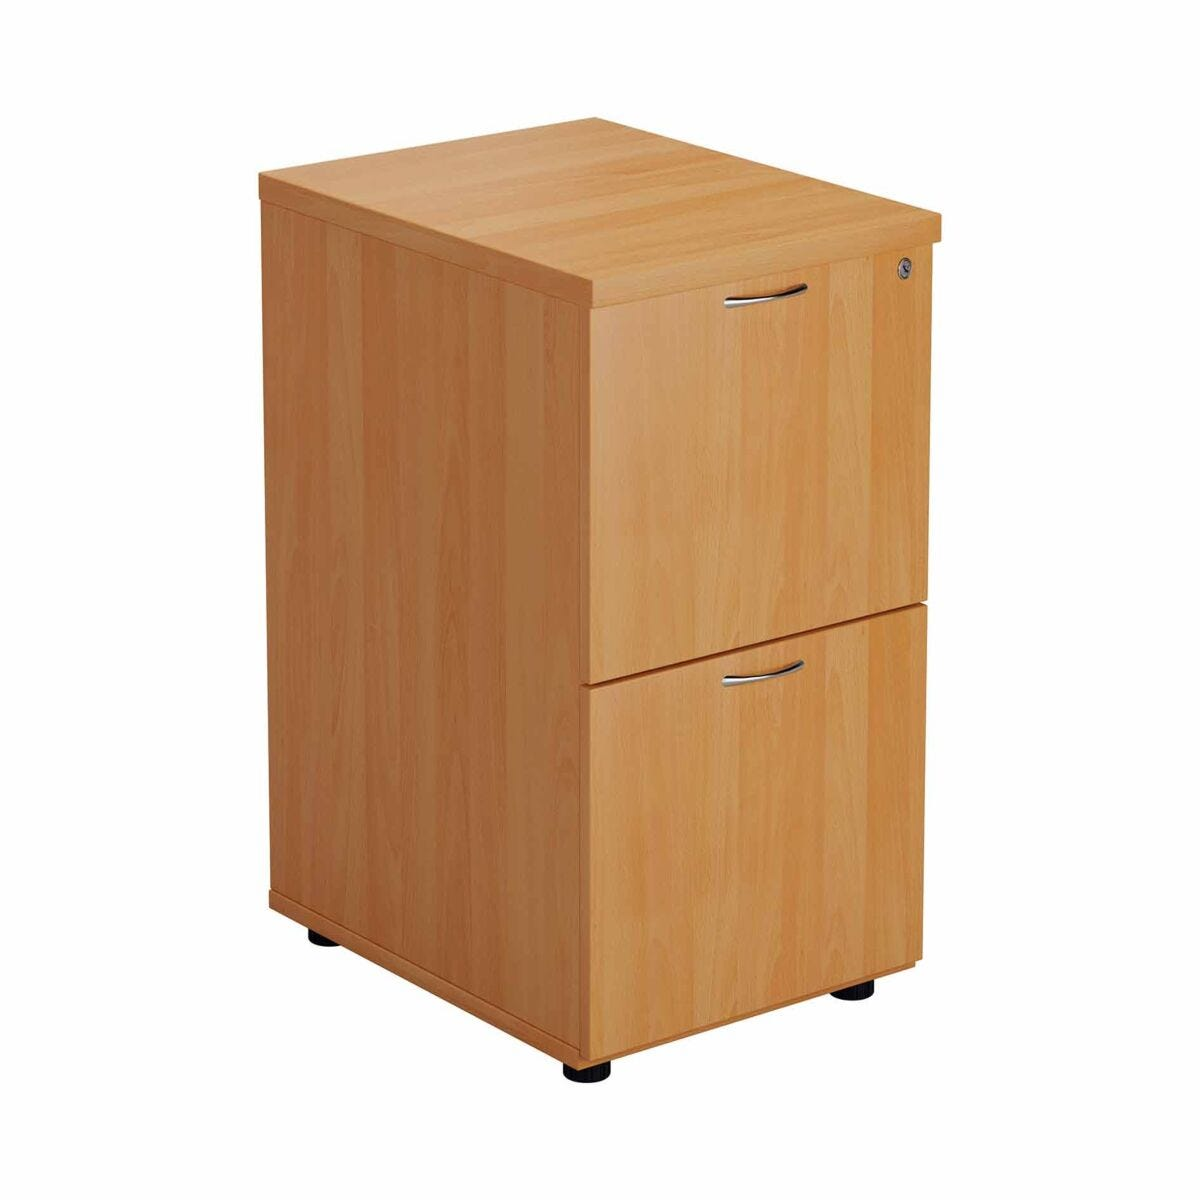 TC Office Deluxe 2 Drawer Filing Cabinet A4 Height 710mm